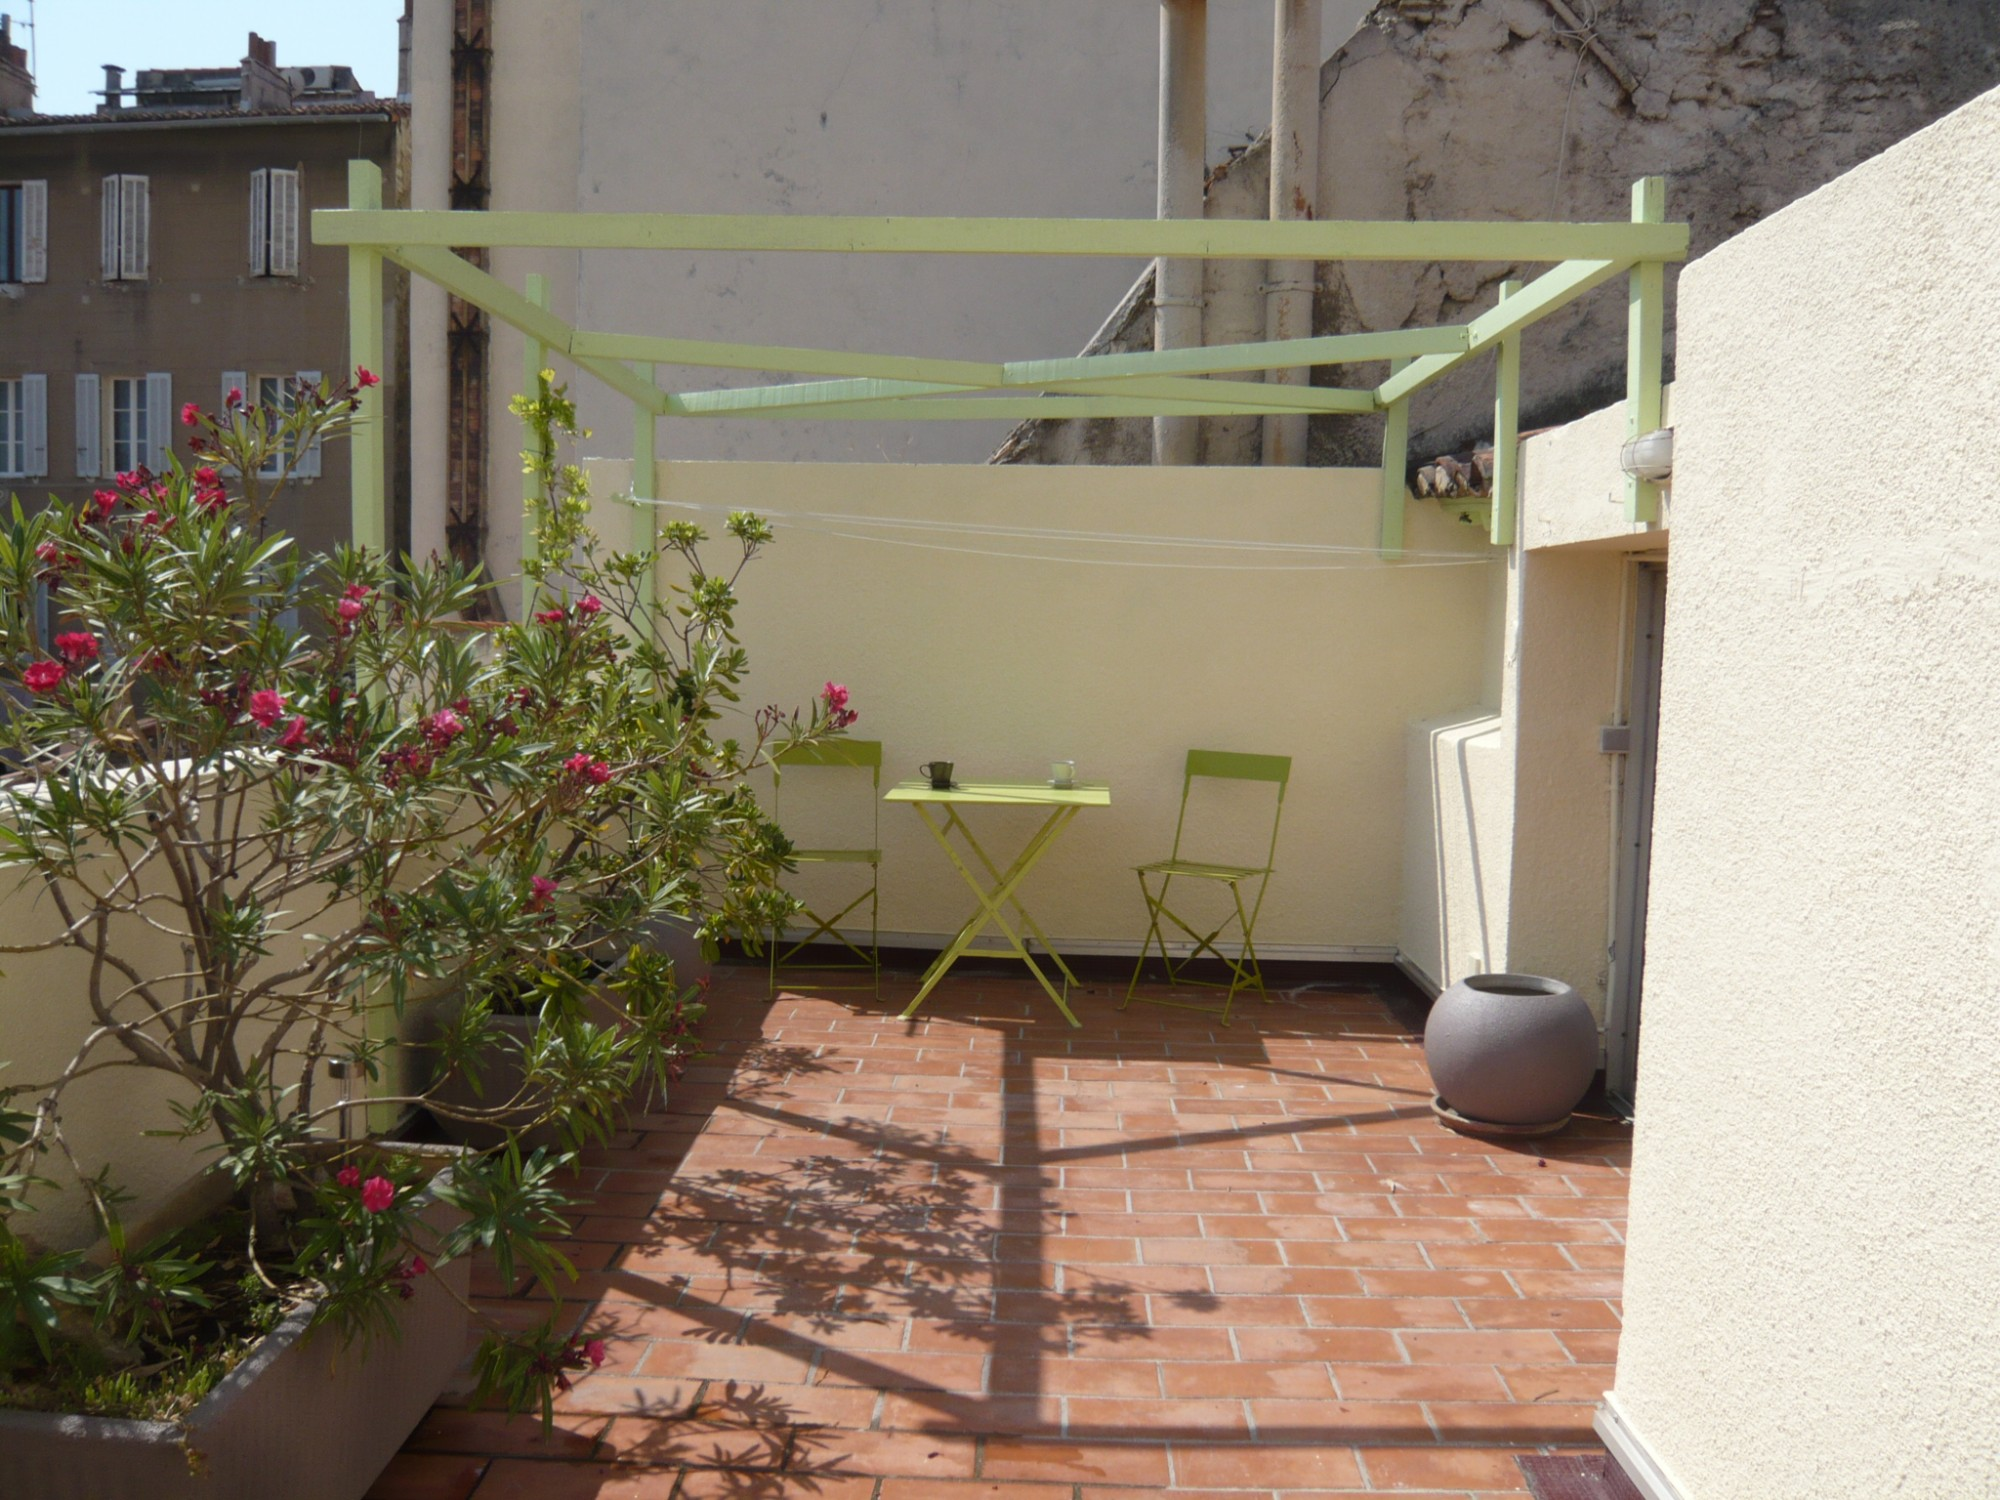 Ventes appartement t2 f2 marseille 07 quartier saint for T2 marseille terrasse